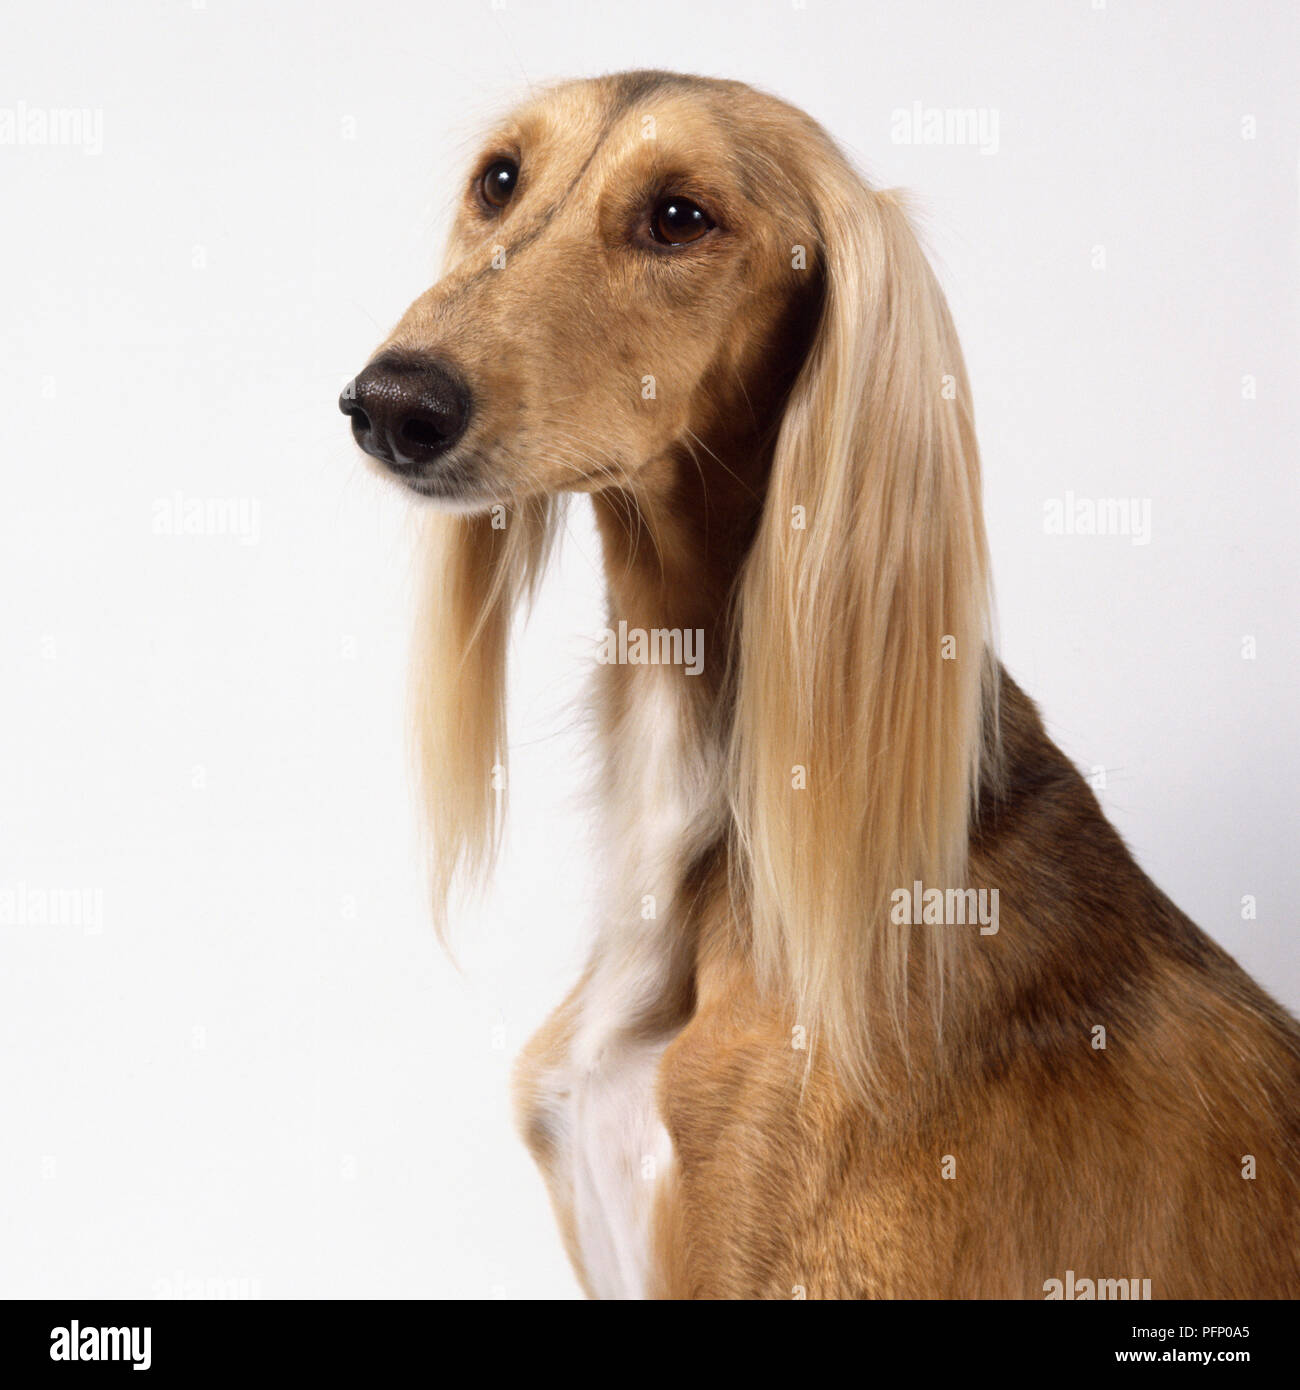 A Pale Tan Saluki With Short Hair On Its Face And Soft Silky